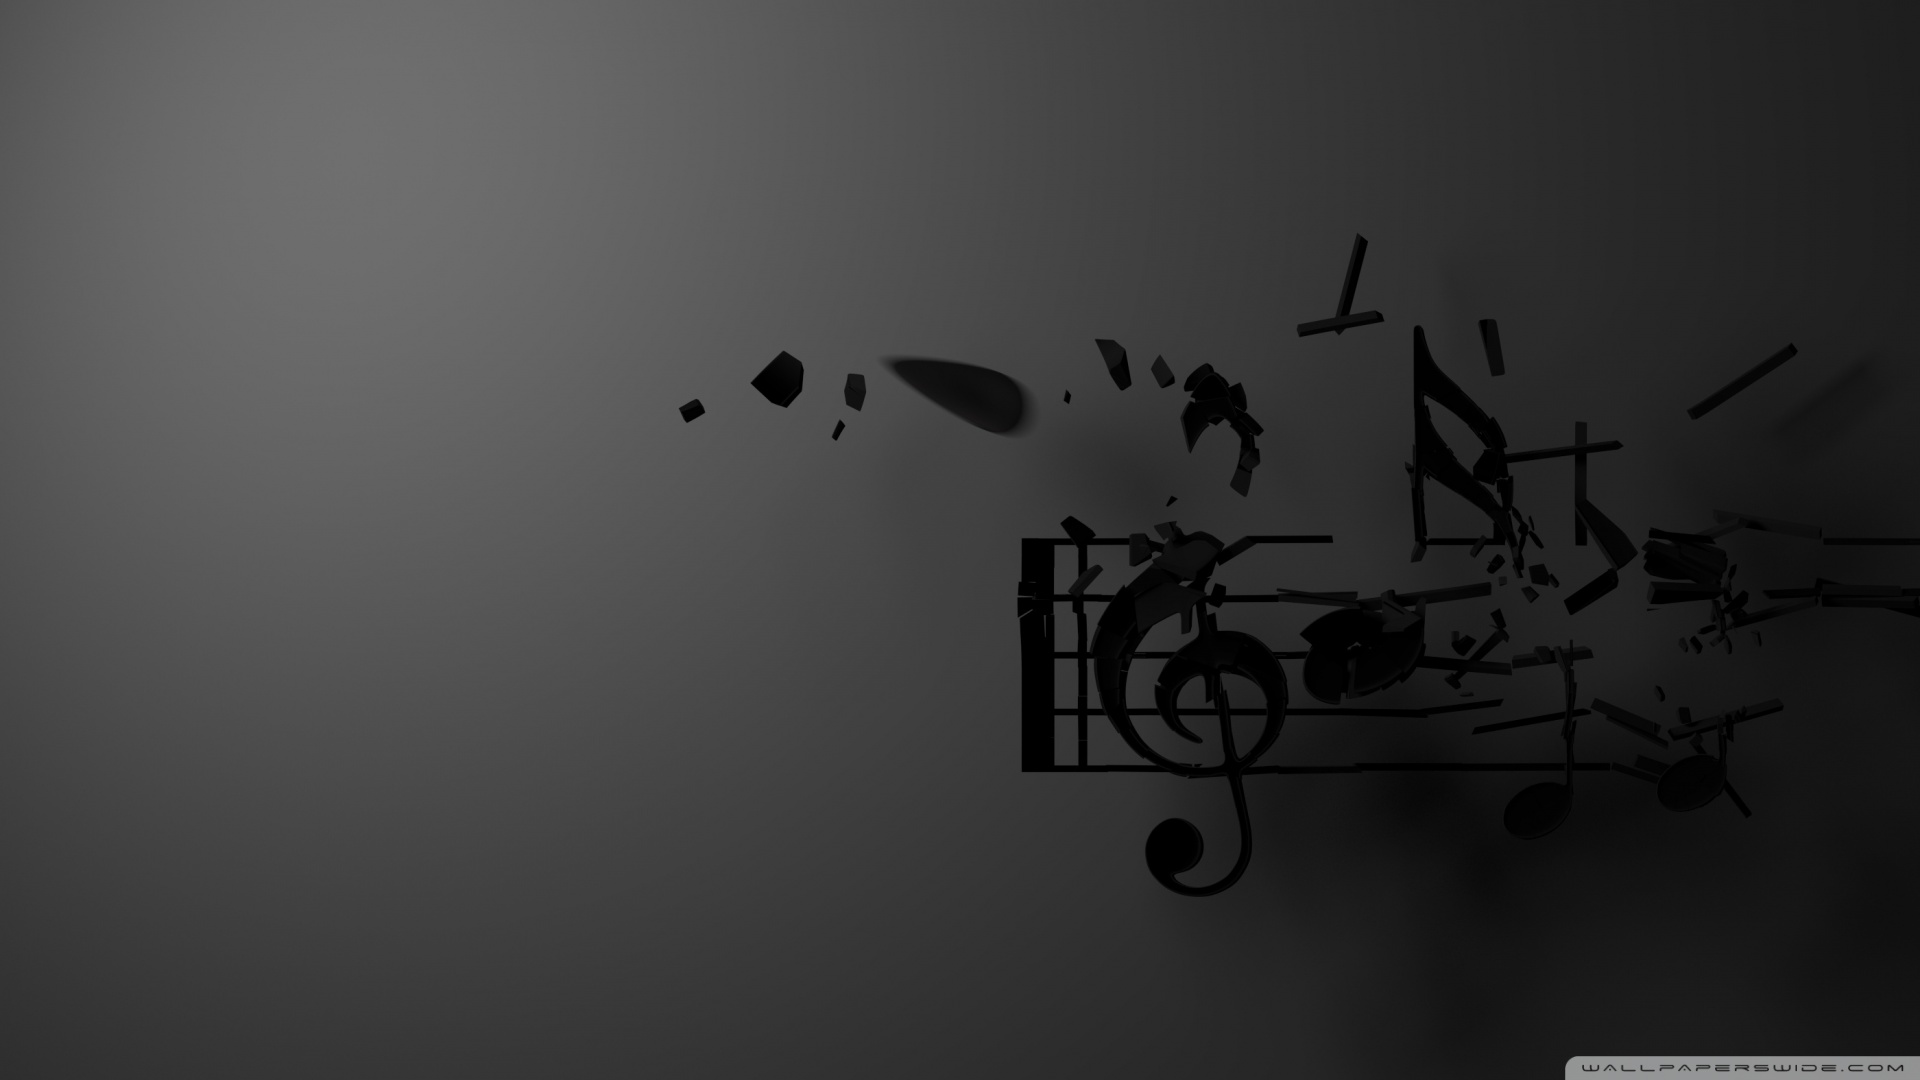 Music Hd Wallpapers 1080p Posted By Sarah Johnson